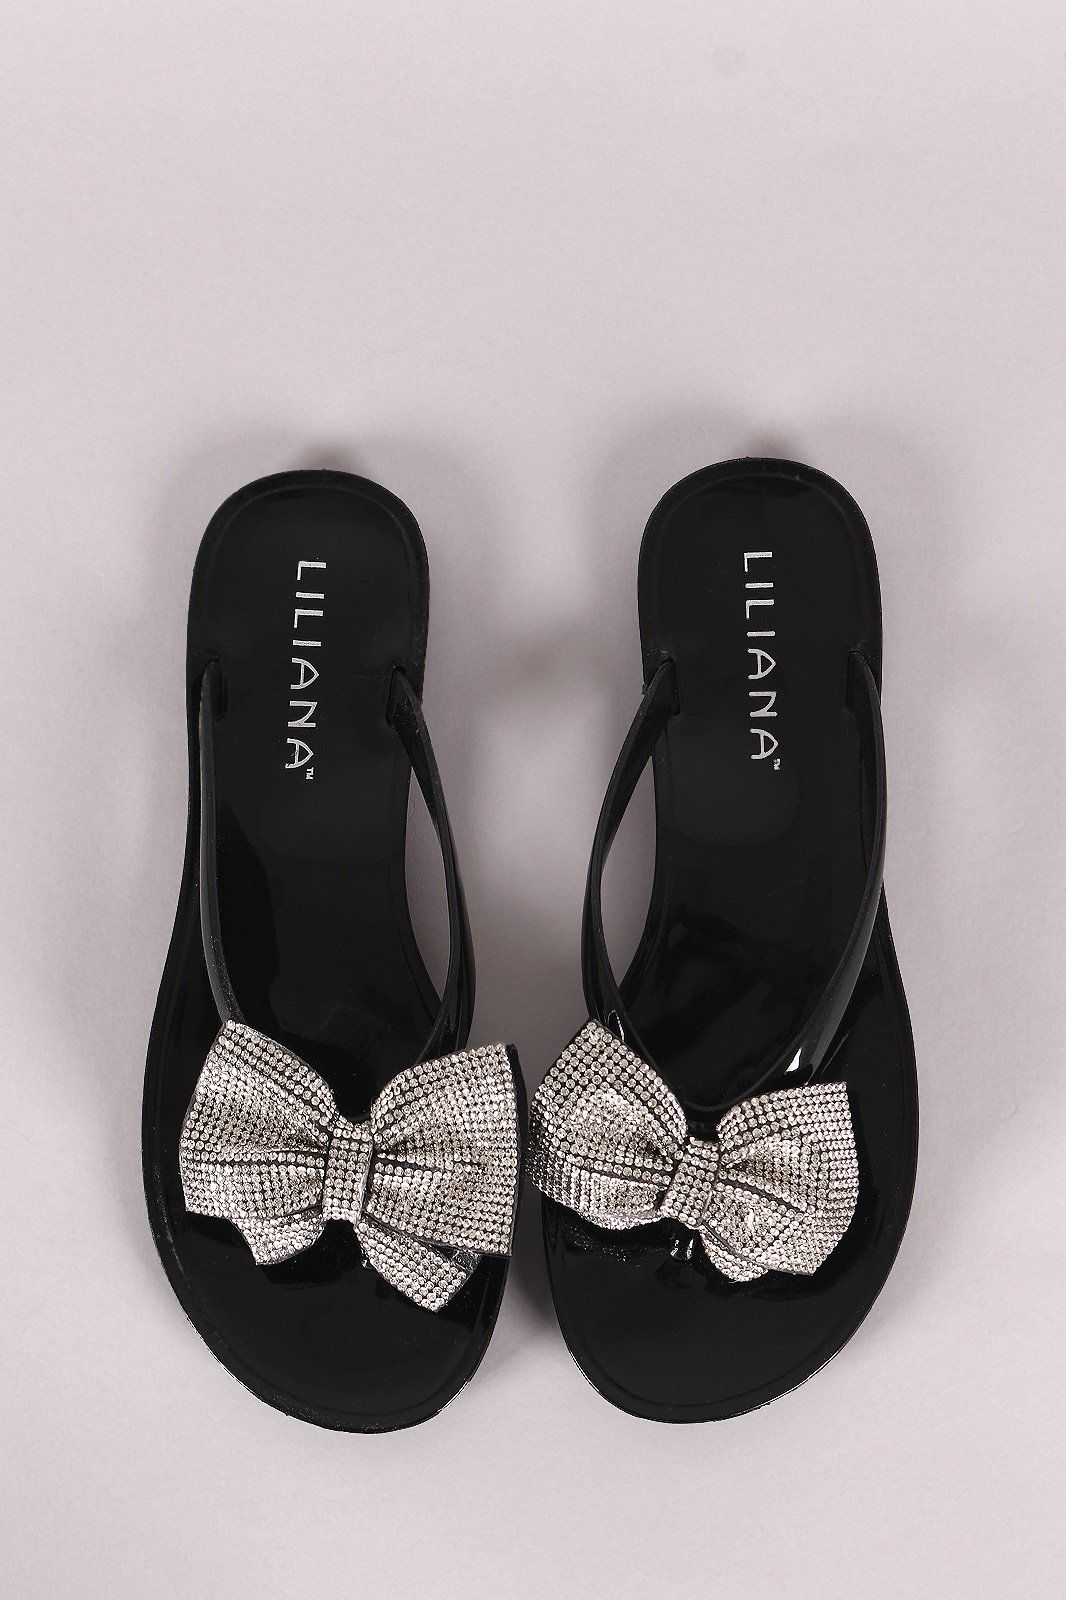 778e2e1485bd95 These chic thong sandal feature a bow decor on V-shape strap